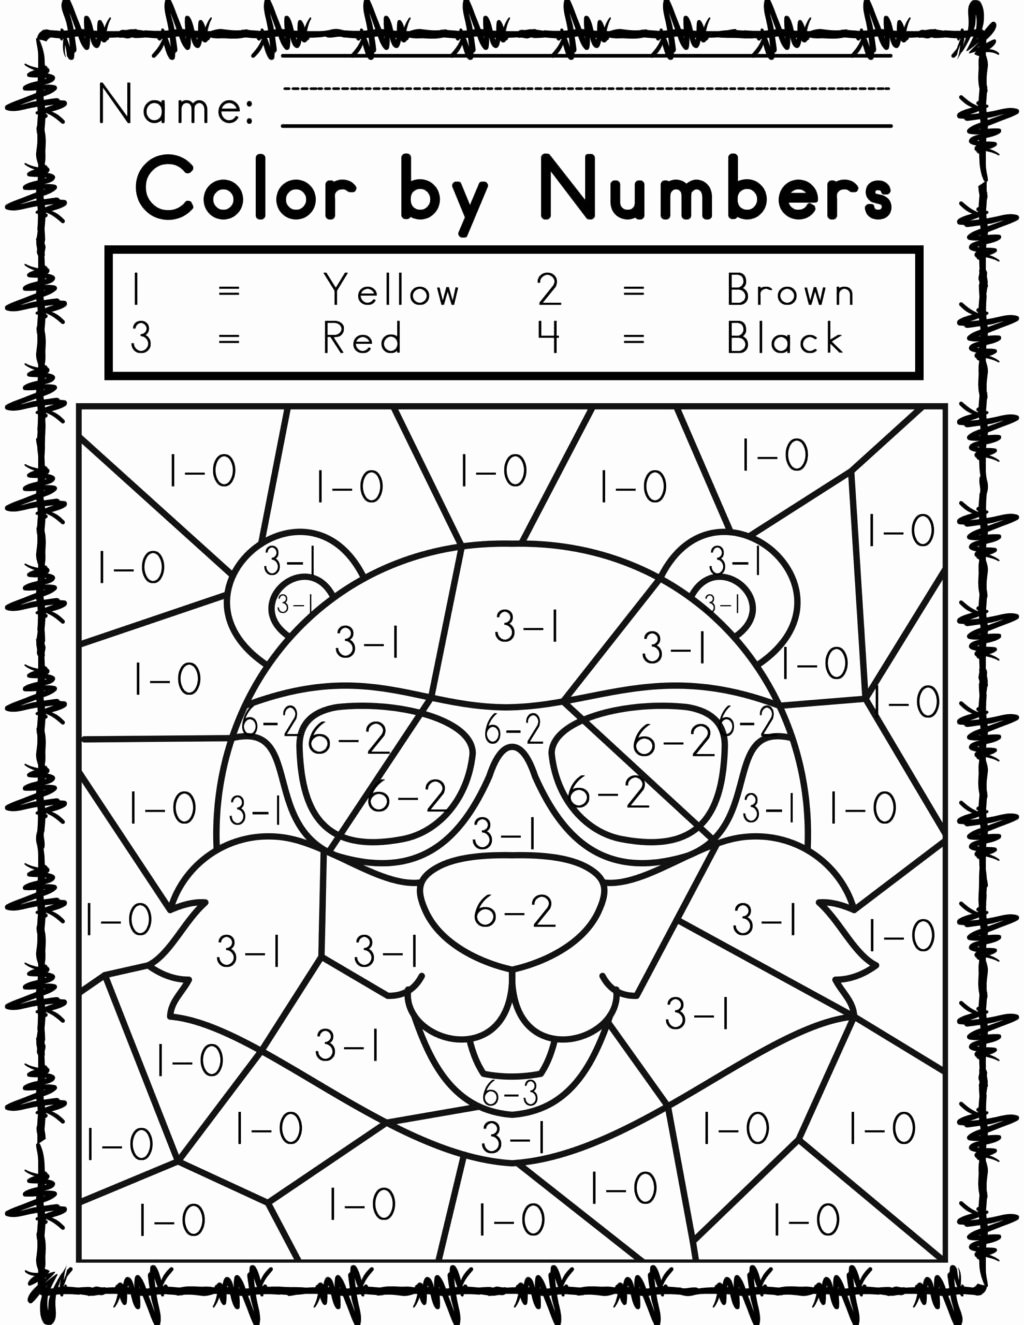 Multiplication Worksheets Games Fresh Worksheet Gradeh Activities Line for 1st Graders Free